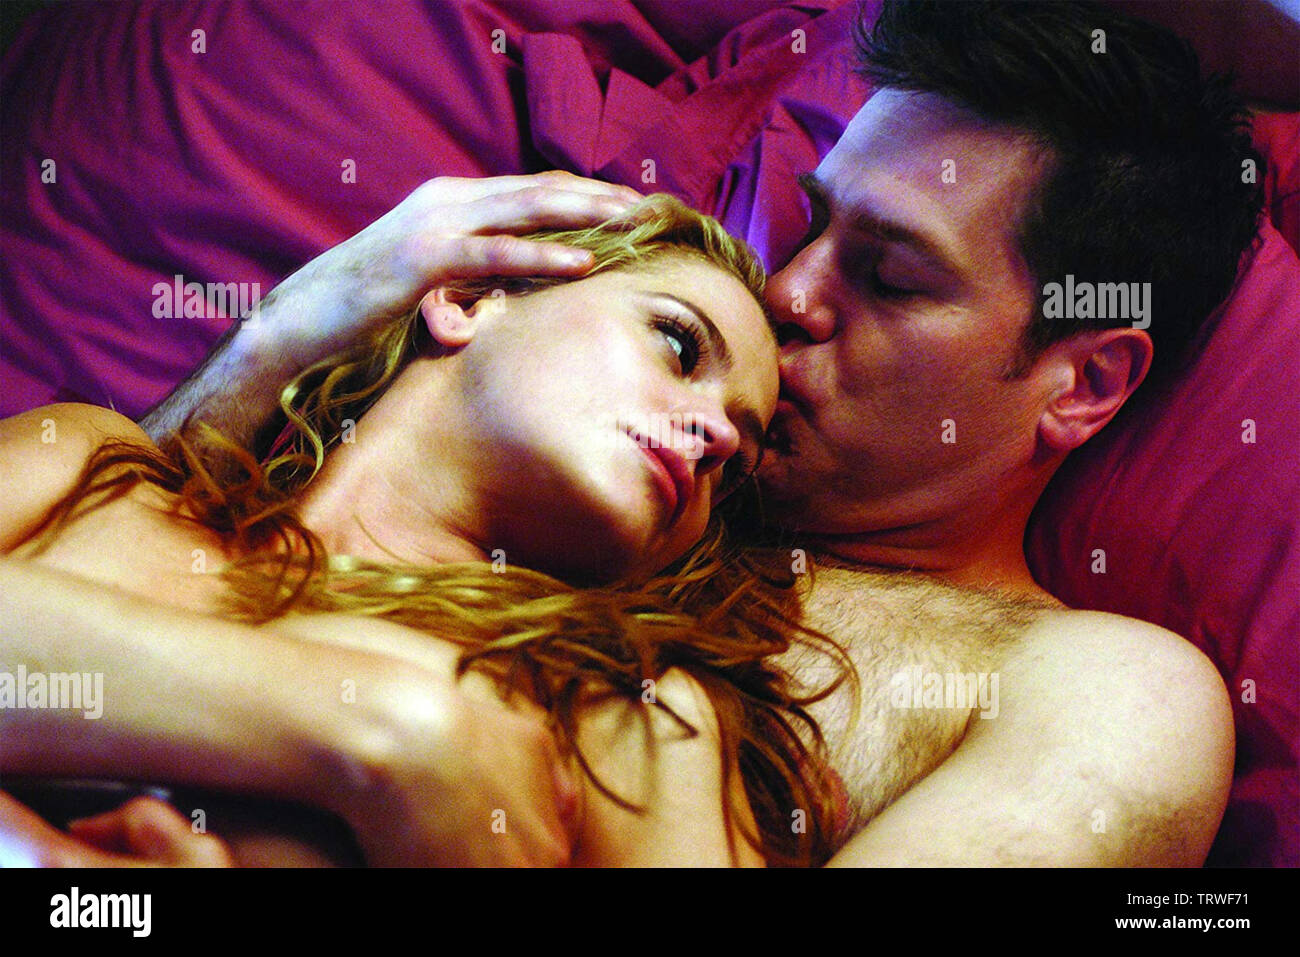 FORBIDDEN SECRETS 2015 Incendo Productions film with Kristy Swanson and David Keeley - Stock Image